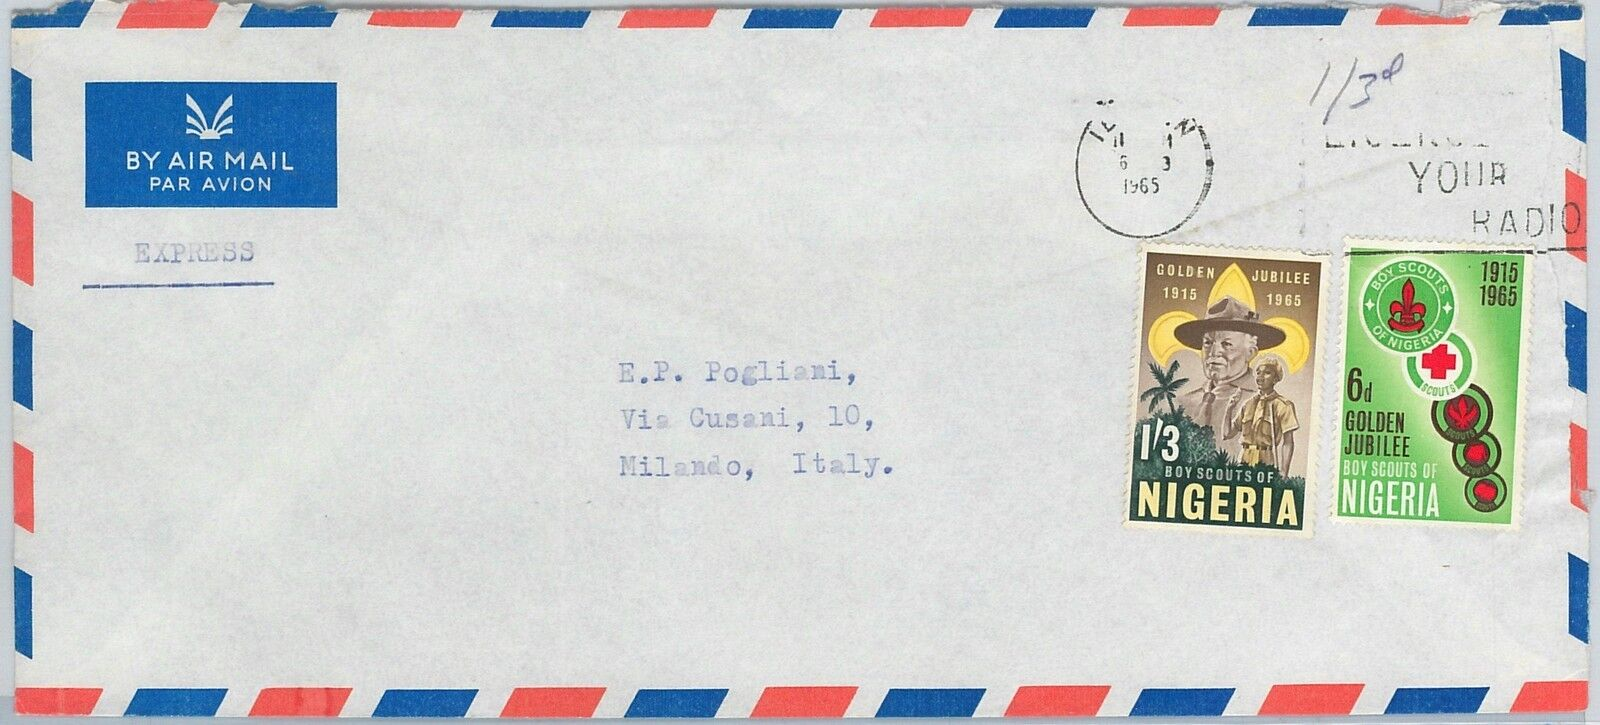 613999 - NIGERIA - POSTAL HISTORY - AIRMAIL COVER  to ITALY - 1965 BOY SCOUTS